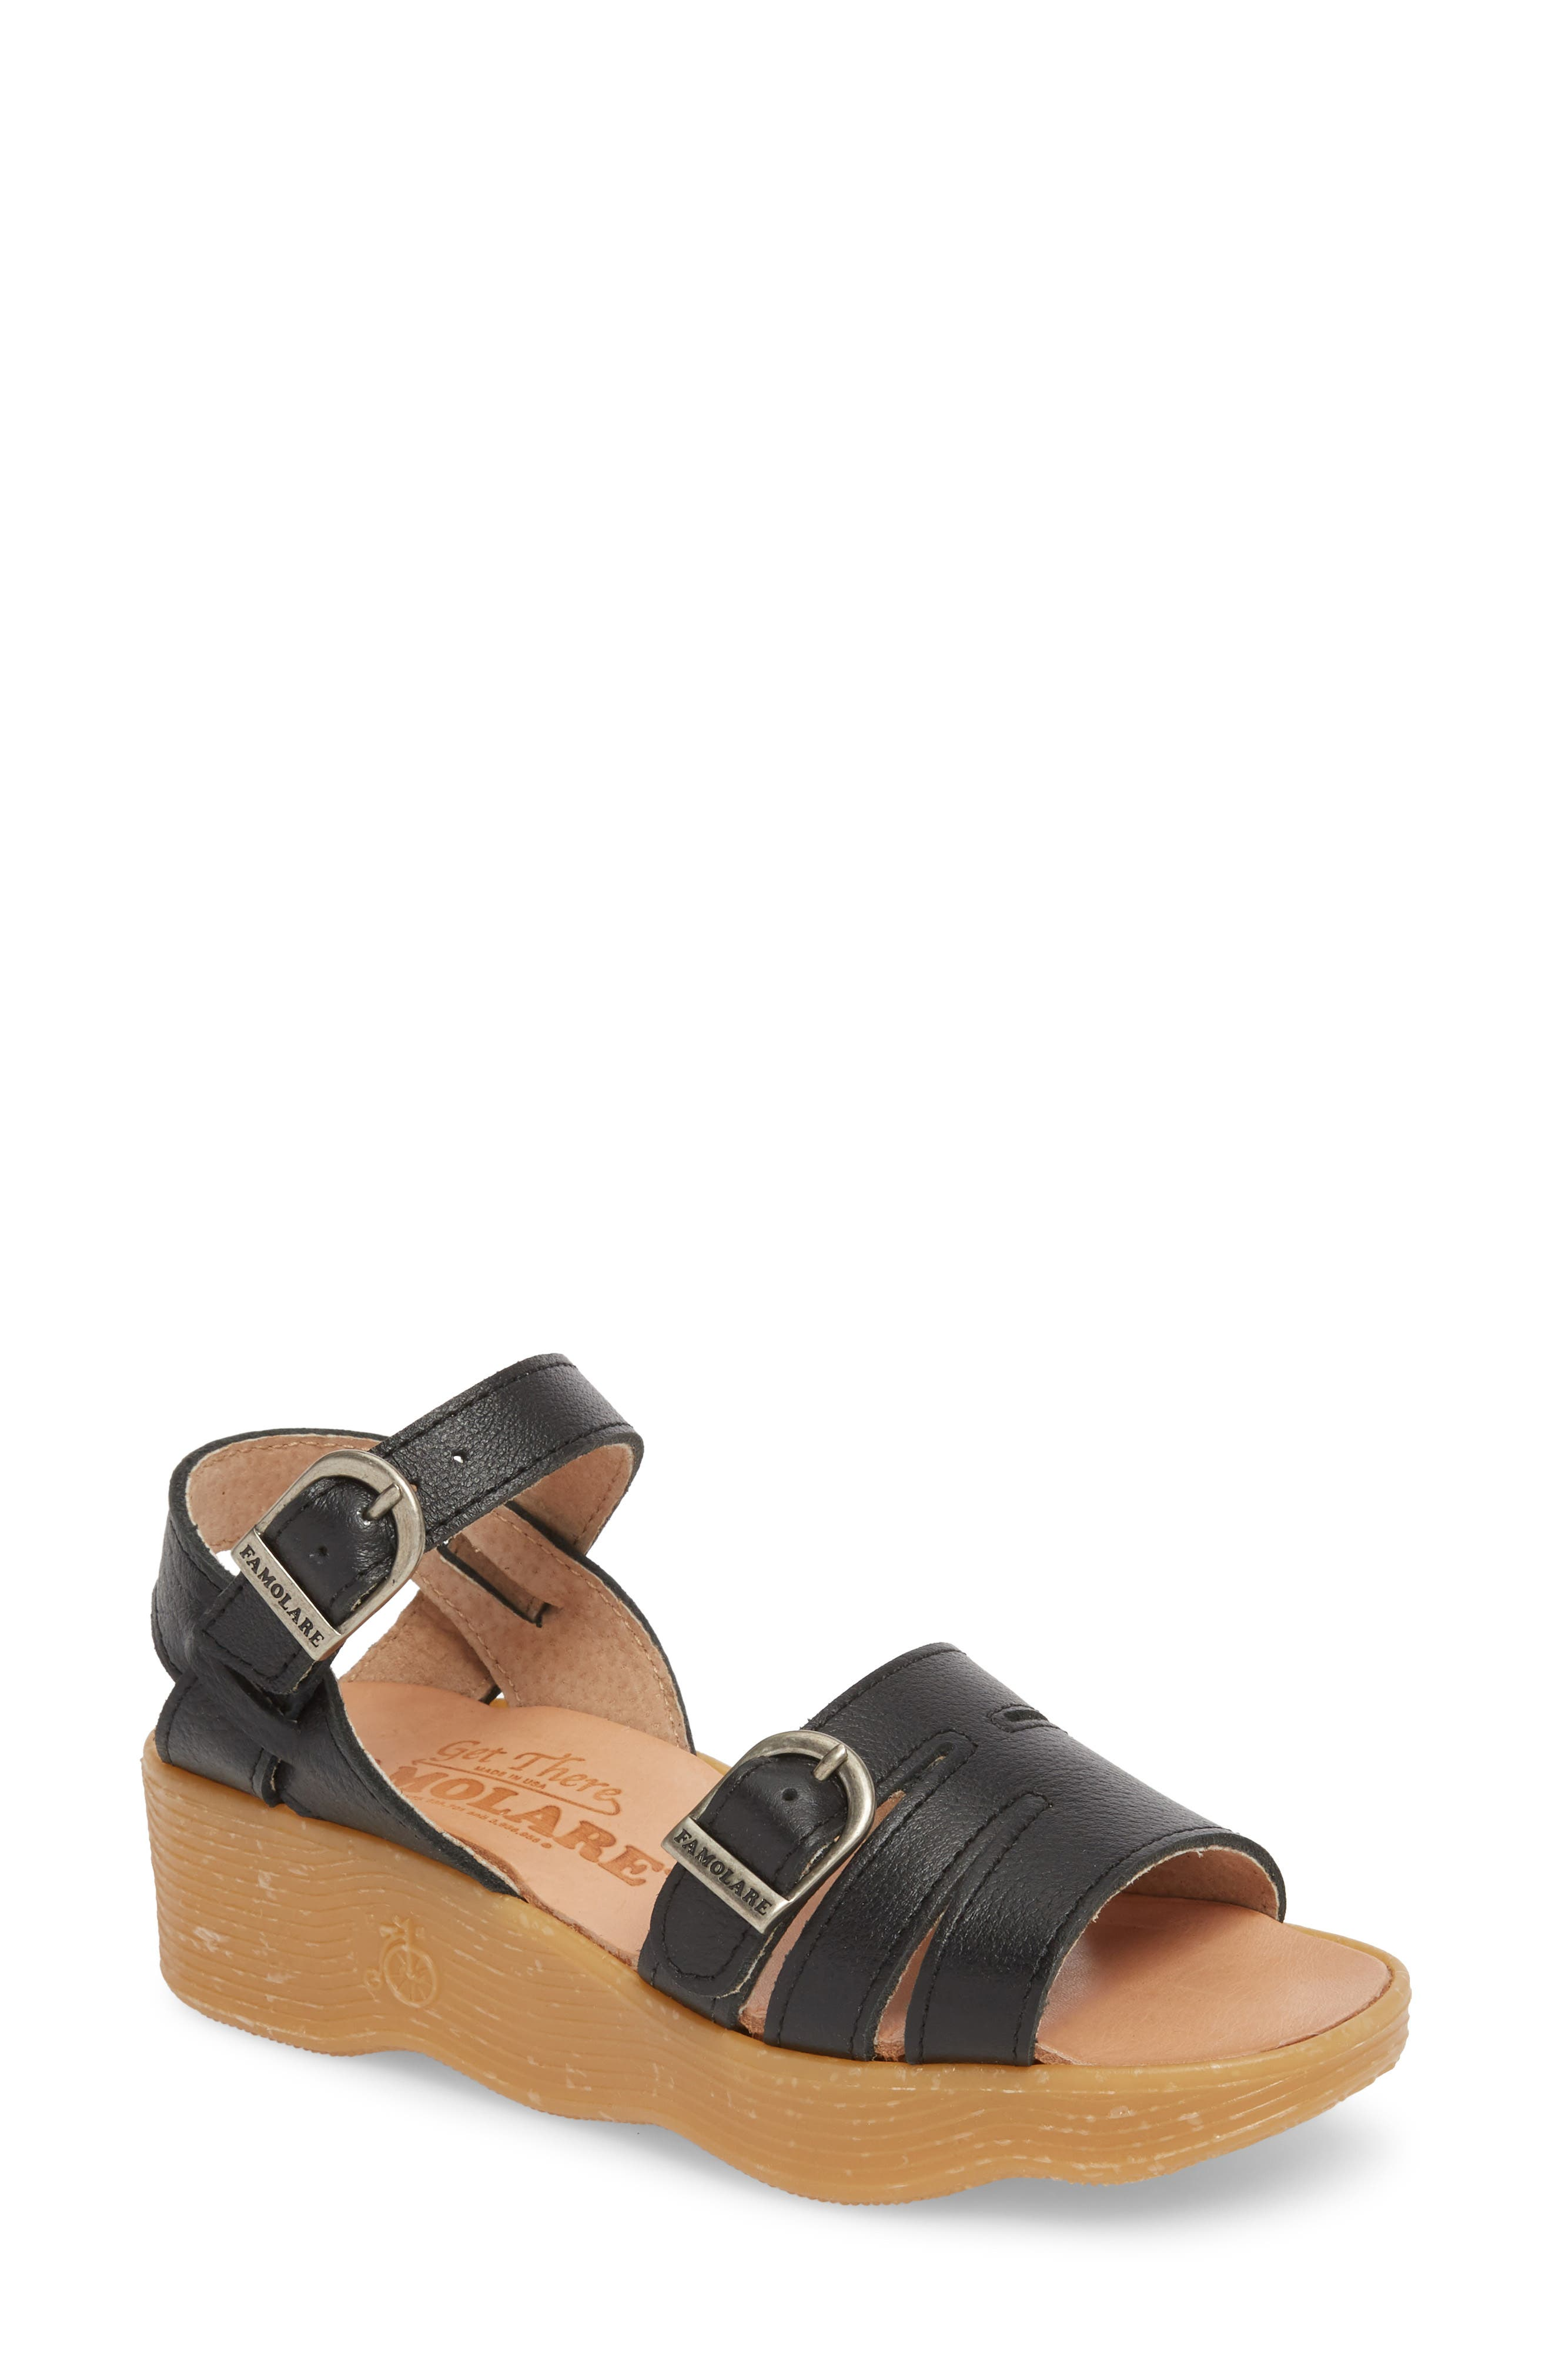 Honeybuckle Wedge Sandal,                         Main,                         color, COAL LEATHER